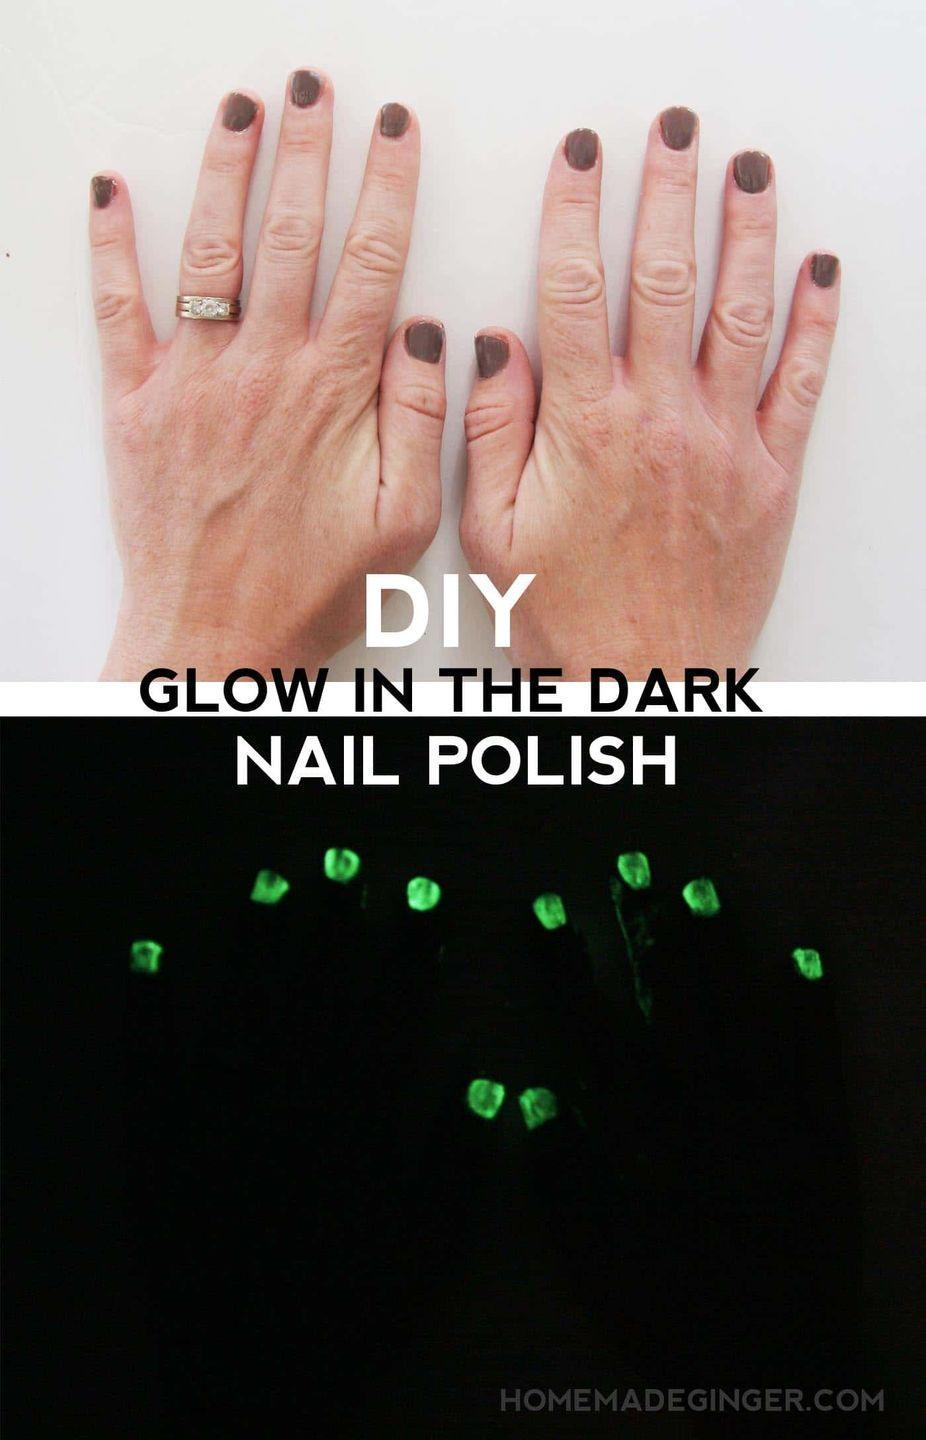 "<p>Help your kids mix together this nail polish, and take turns giving each other ""monster manicures.""</p><p><strong>Get the tutorial at <a href=""https://modpodgerocksblog.com/diy-glow-in-the-dark-nail-polish/"" rel=""nofollow noopener"" target=""_blank"" data-ylk=""slk:Mod Podge Rocks"" class=""link rapid-noclick-resp"">Mod Podge Rocks</a>.</strong></p><p><strong><a class=""link rapid-noclick-resp"" href=""https://www.amazon.com/Revlon-66182-Nail-Enamel-Clear/dp/B000WQ9VNO?tag=syn-yahoo-20&ascsubtag=%5Bartid%7C10050.g.4950%5Bsrc%7Cyahoo-us"" rel=""nofollow noopener"" target=""_blank"" data-ylk=""slk:SHOP NAIL POLISH"">SHOP NAIL POLISH</a><br></strong></p>"